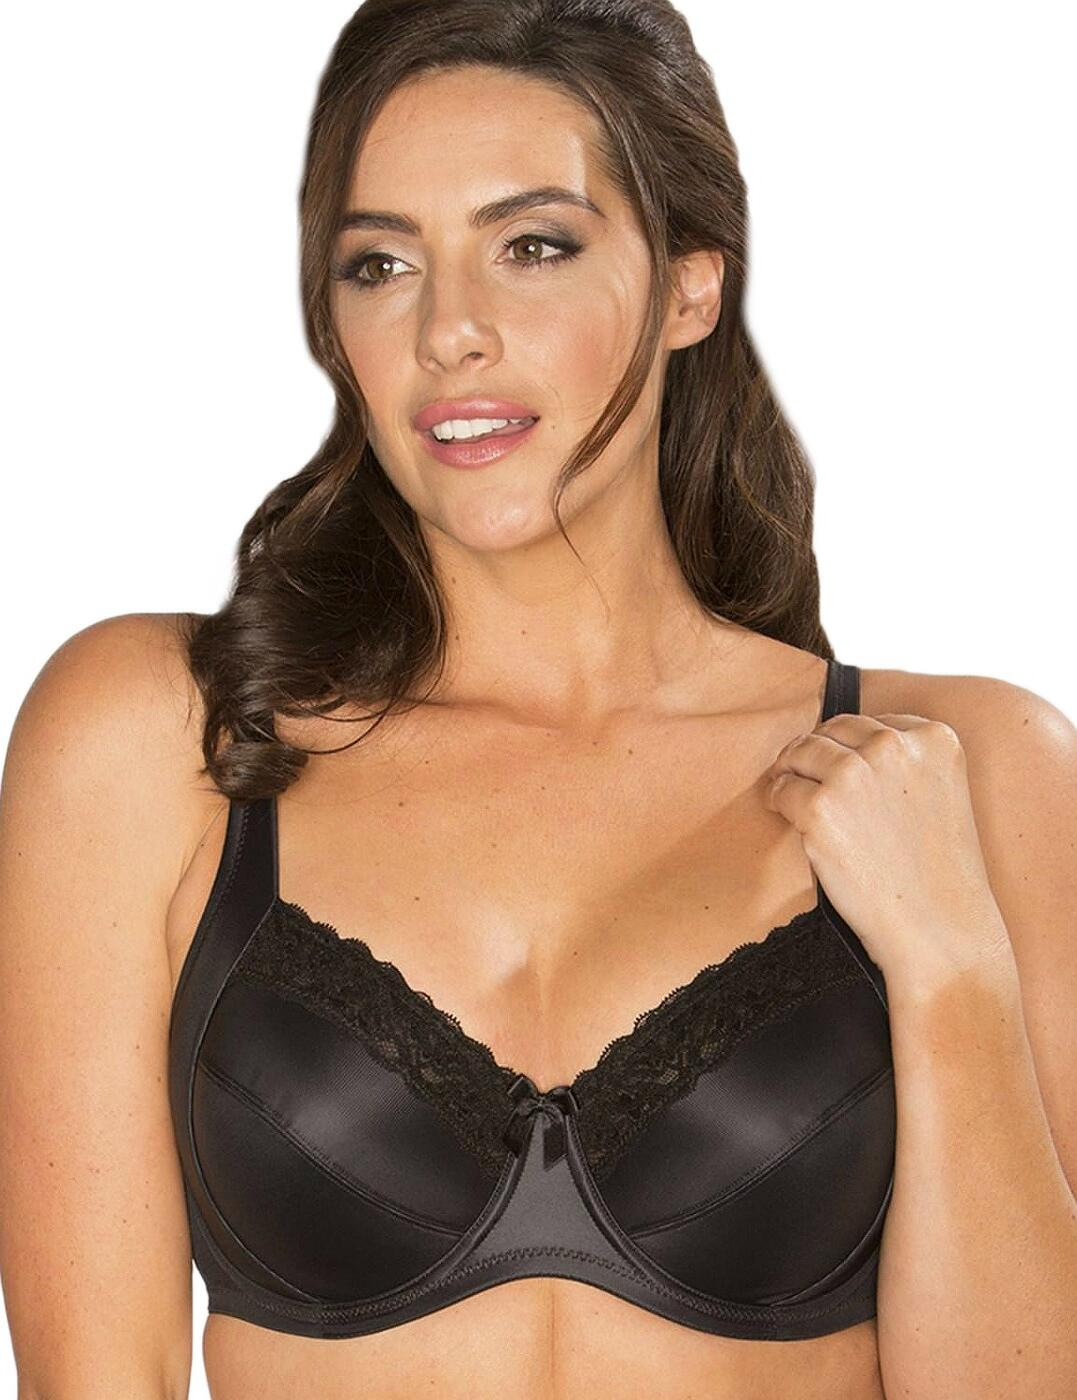 Pour Moi Body Comfort 3814 Non Padded Underwired Side Support Bra ... bd126dd6d